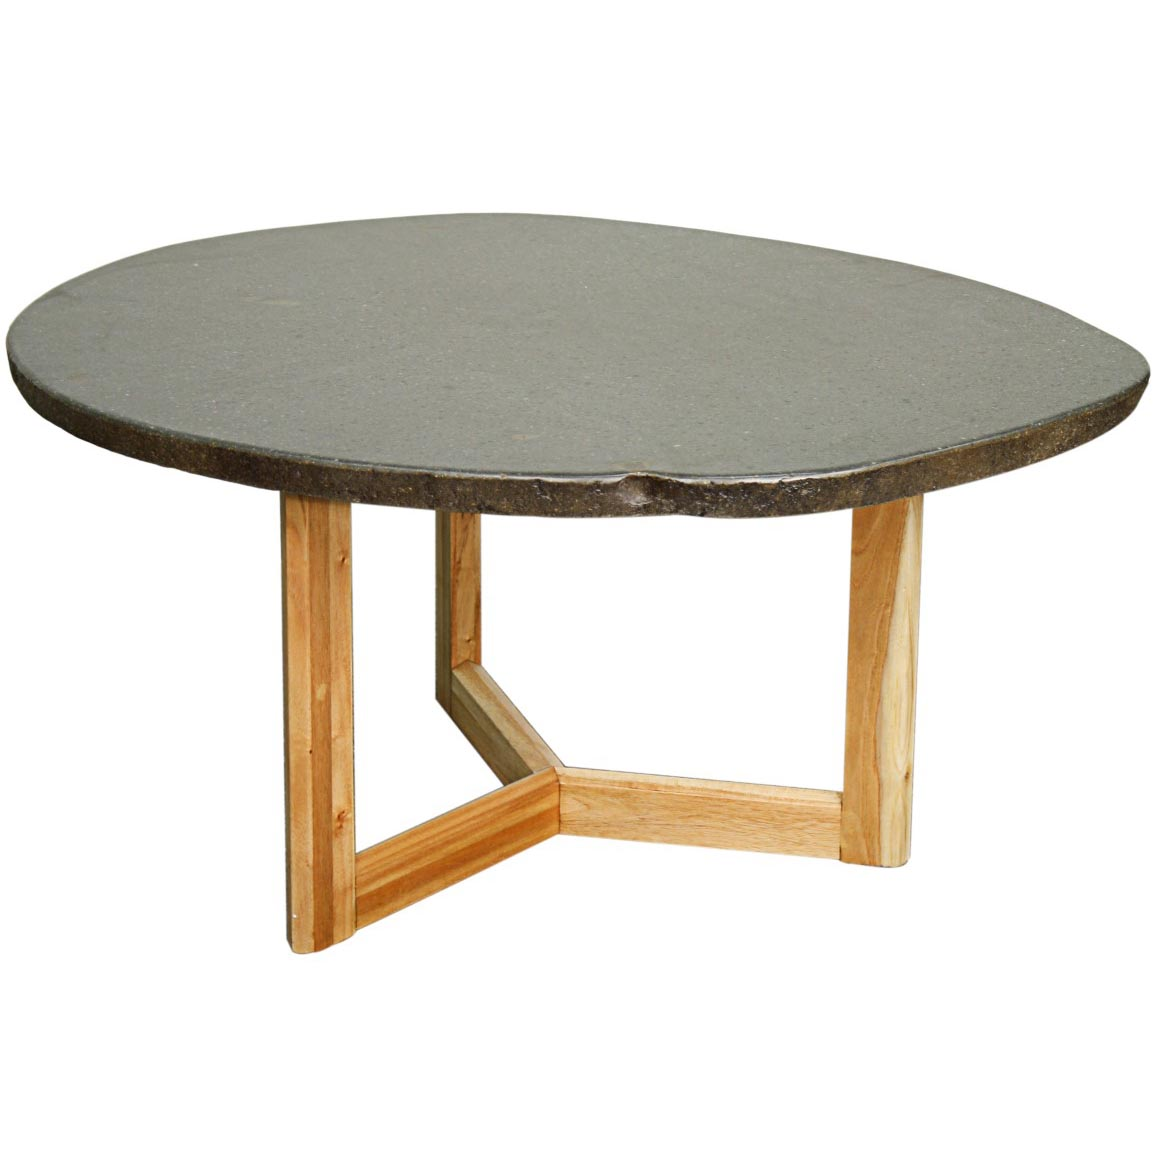 Natural Stone Coffee Table: Gale Stone Coffee Table, Natural Stone